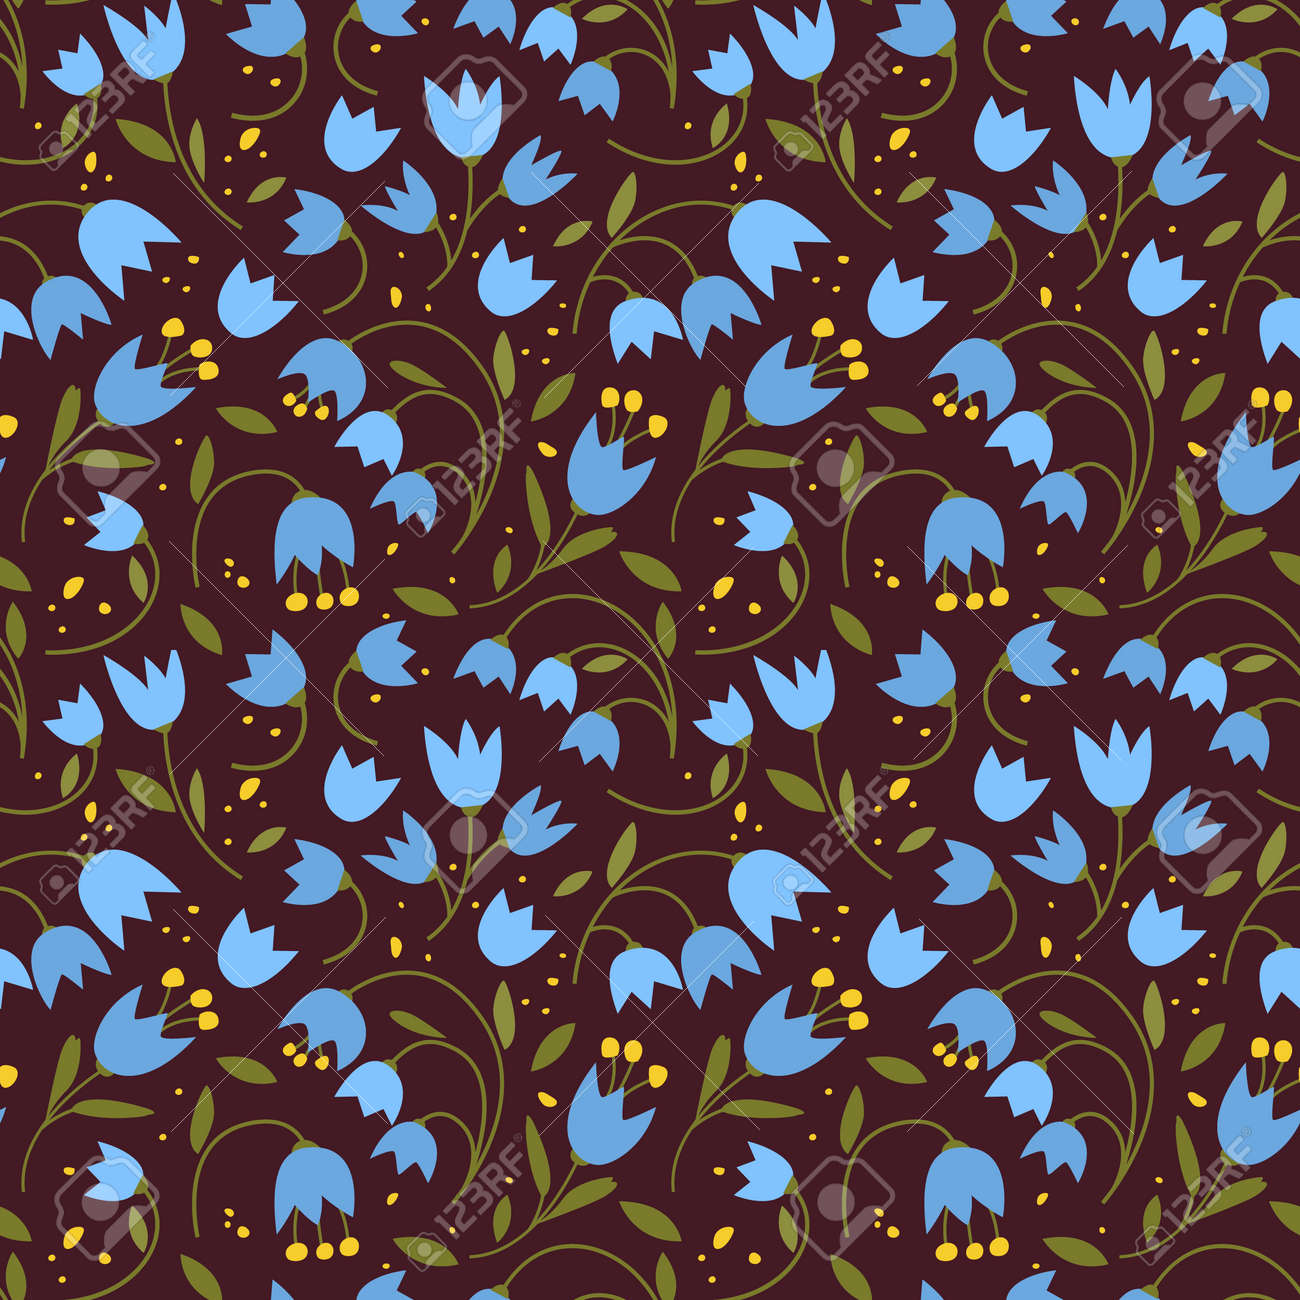 Cute seamless pattern with colorful small flowers. Small flowers on Dark background, Vector illustrations - 170162877